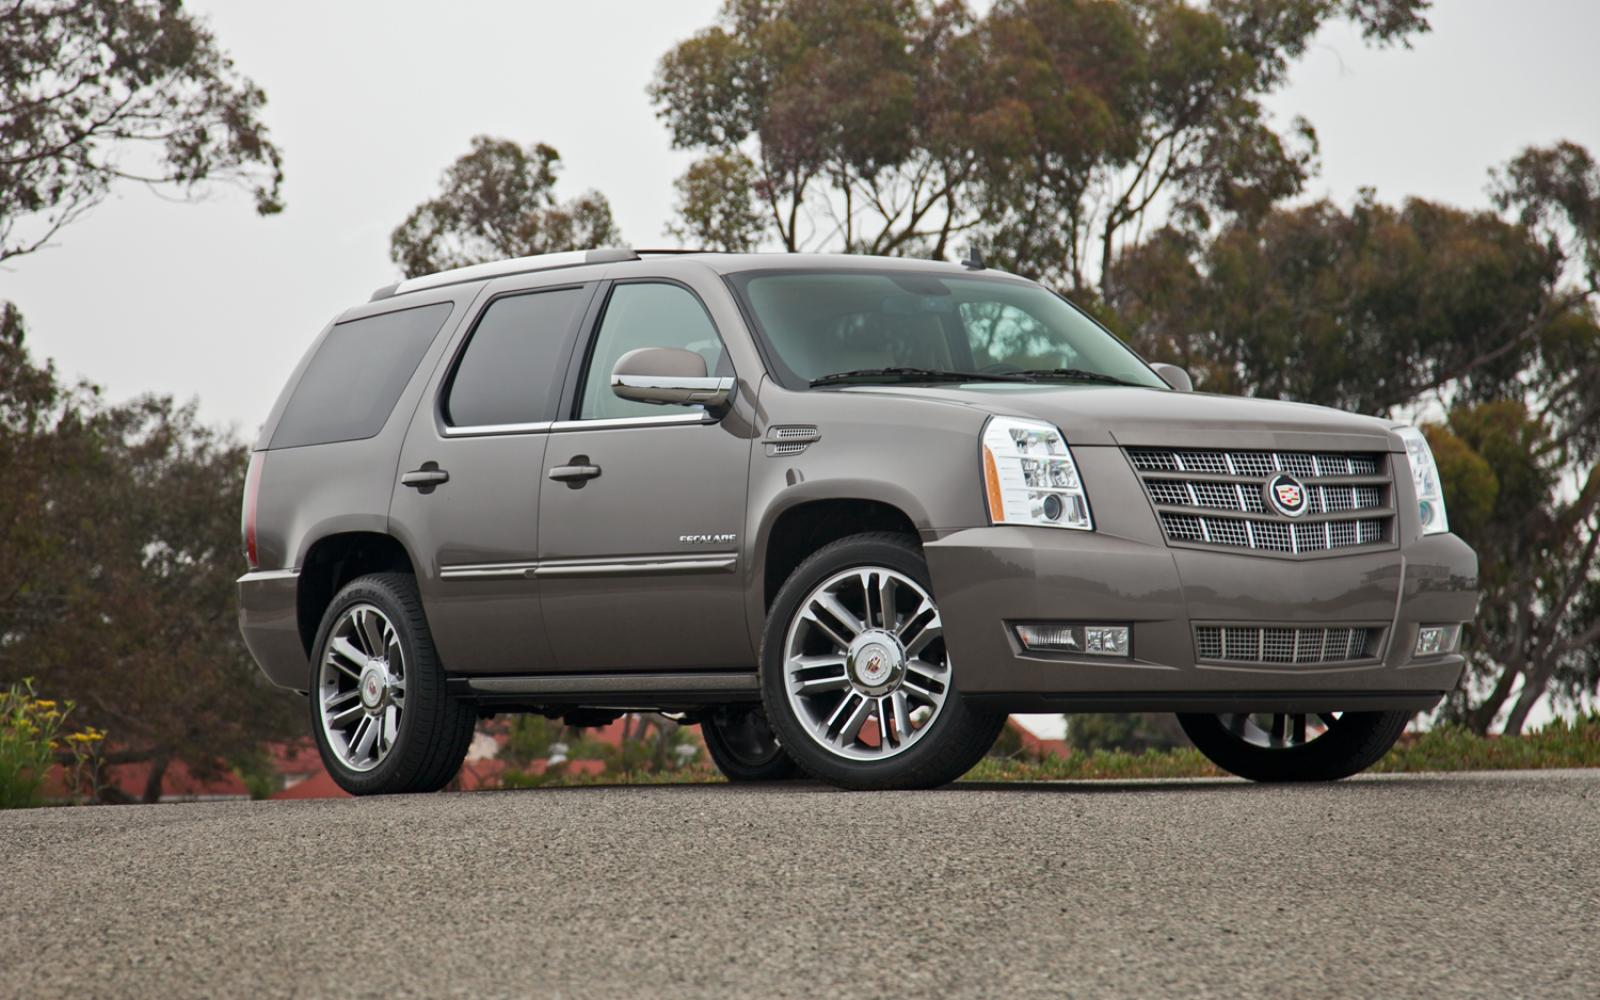 2012 cadillac escalade information and photos zombiedrive. Black Bedroom Furniture Sets. Home Design Ideas